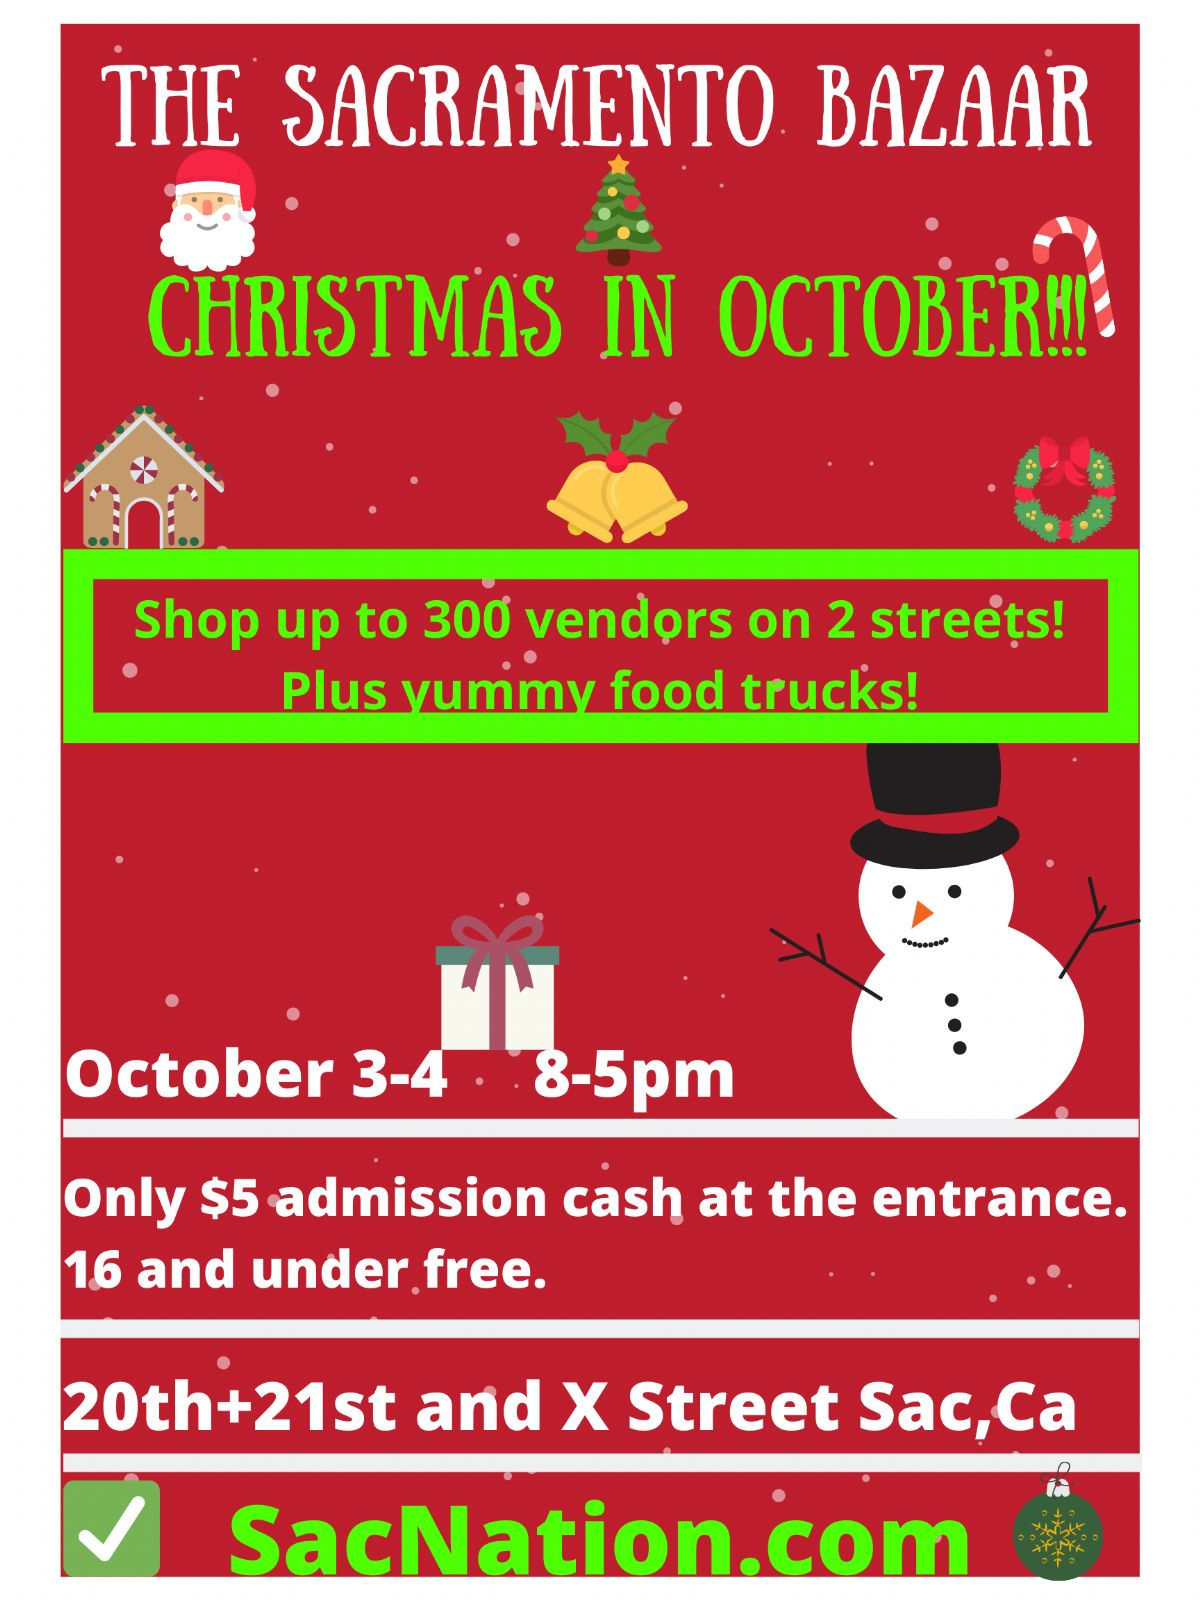 The Sacramento Bazaar Xmas In October